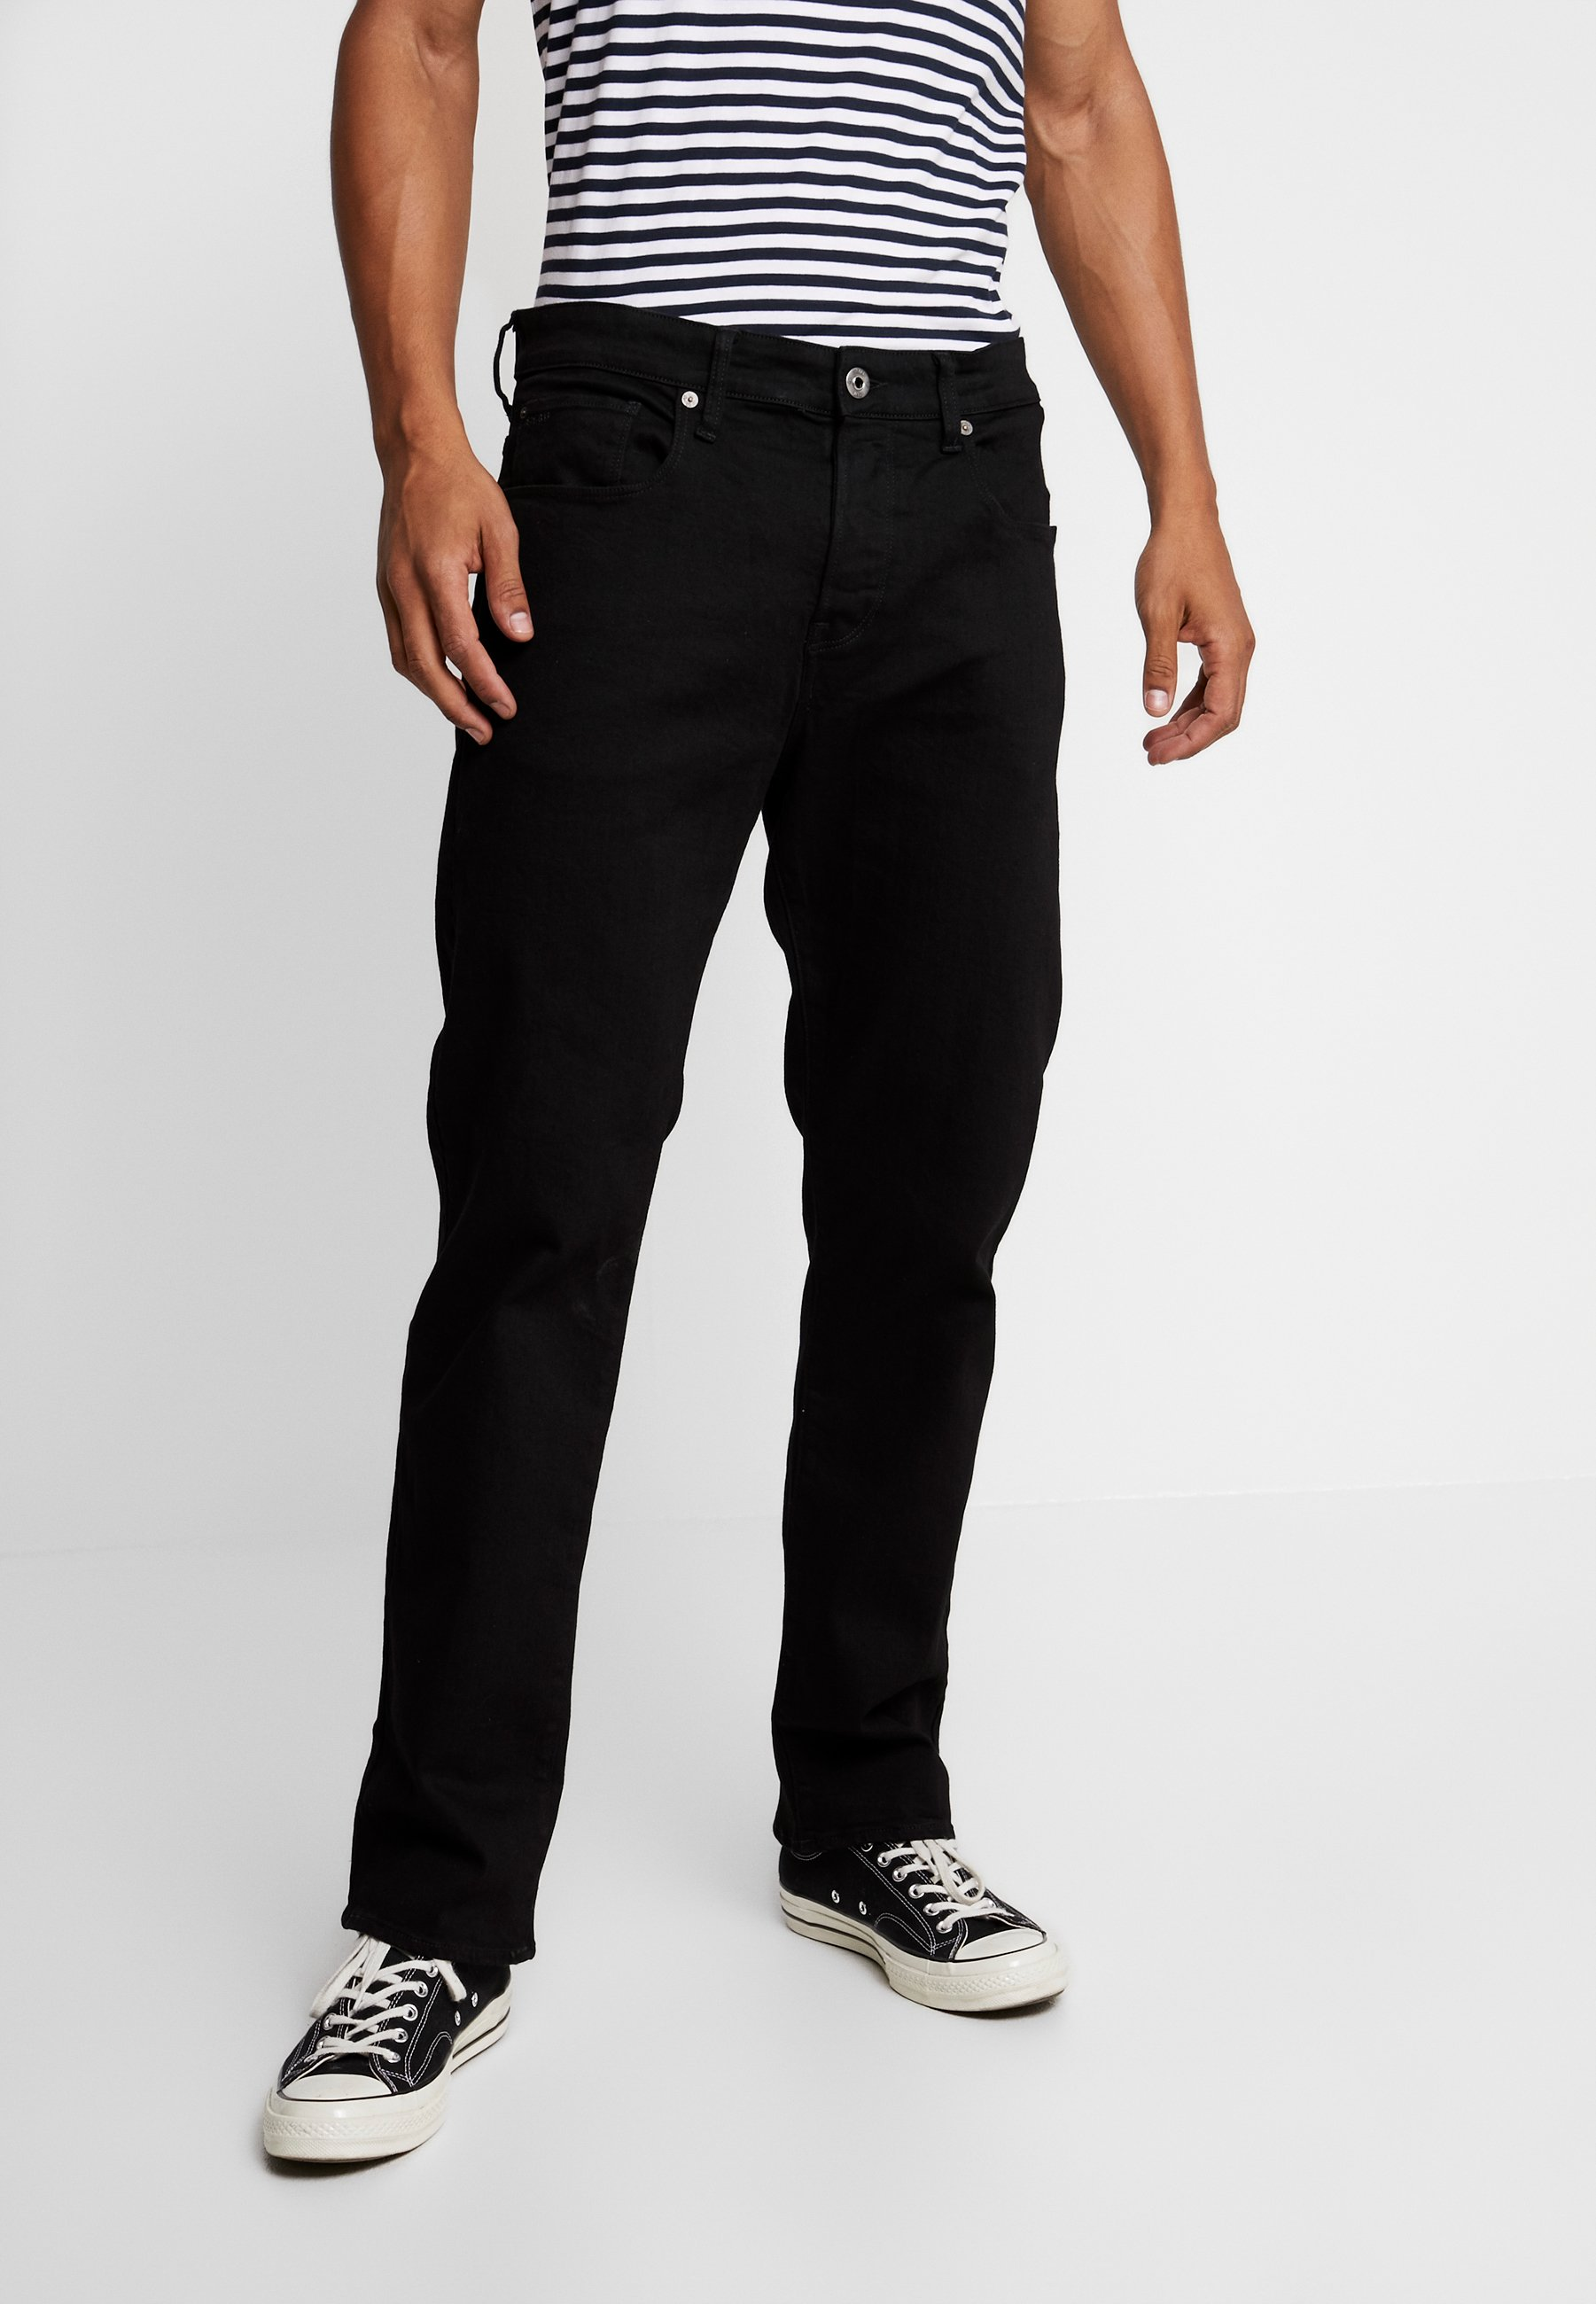 RelaxedJeans star G Baggy Nero 3301 Rinsed Black WD2HI9E